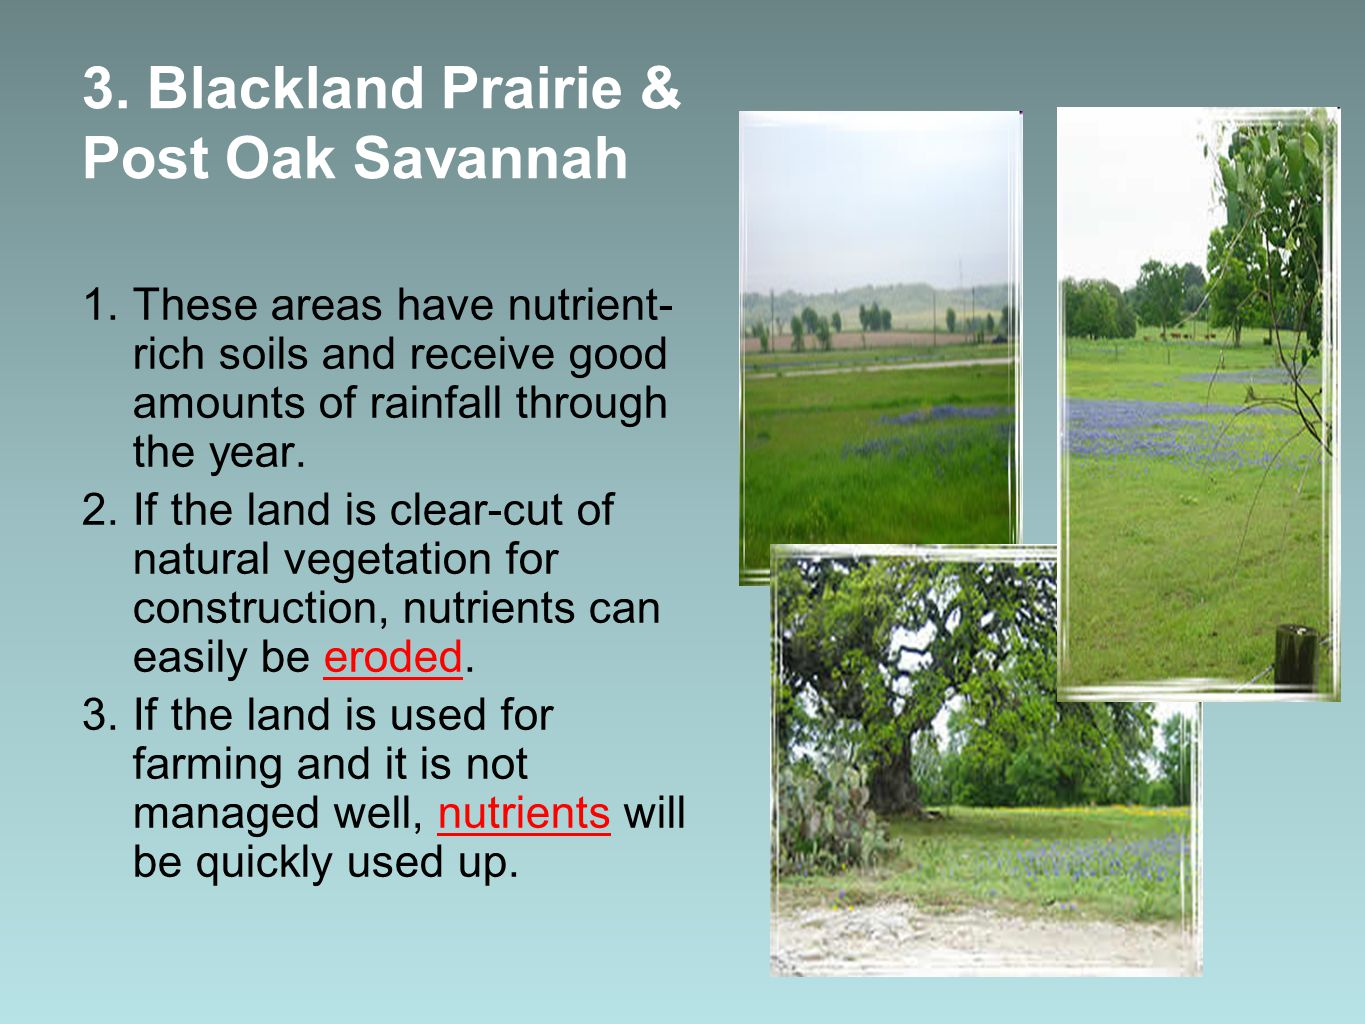 3. Blackland Prairie & Post Oak Savannah